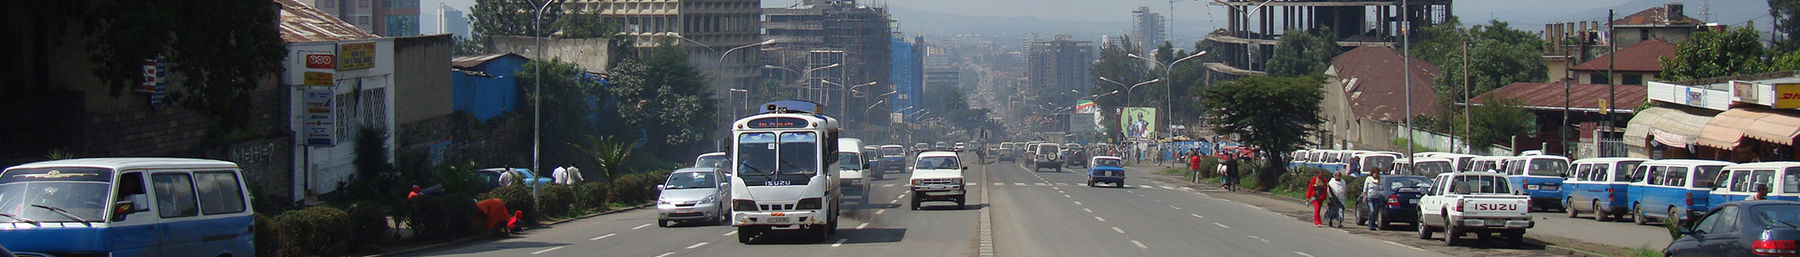 Addis Ababa banner Churchill Avenue.jpg